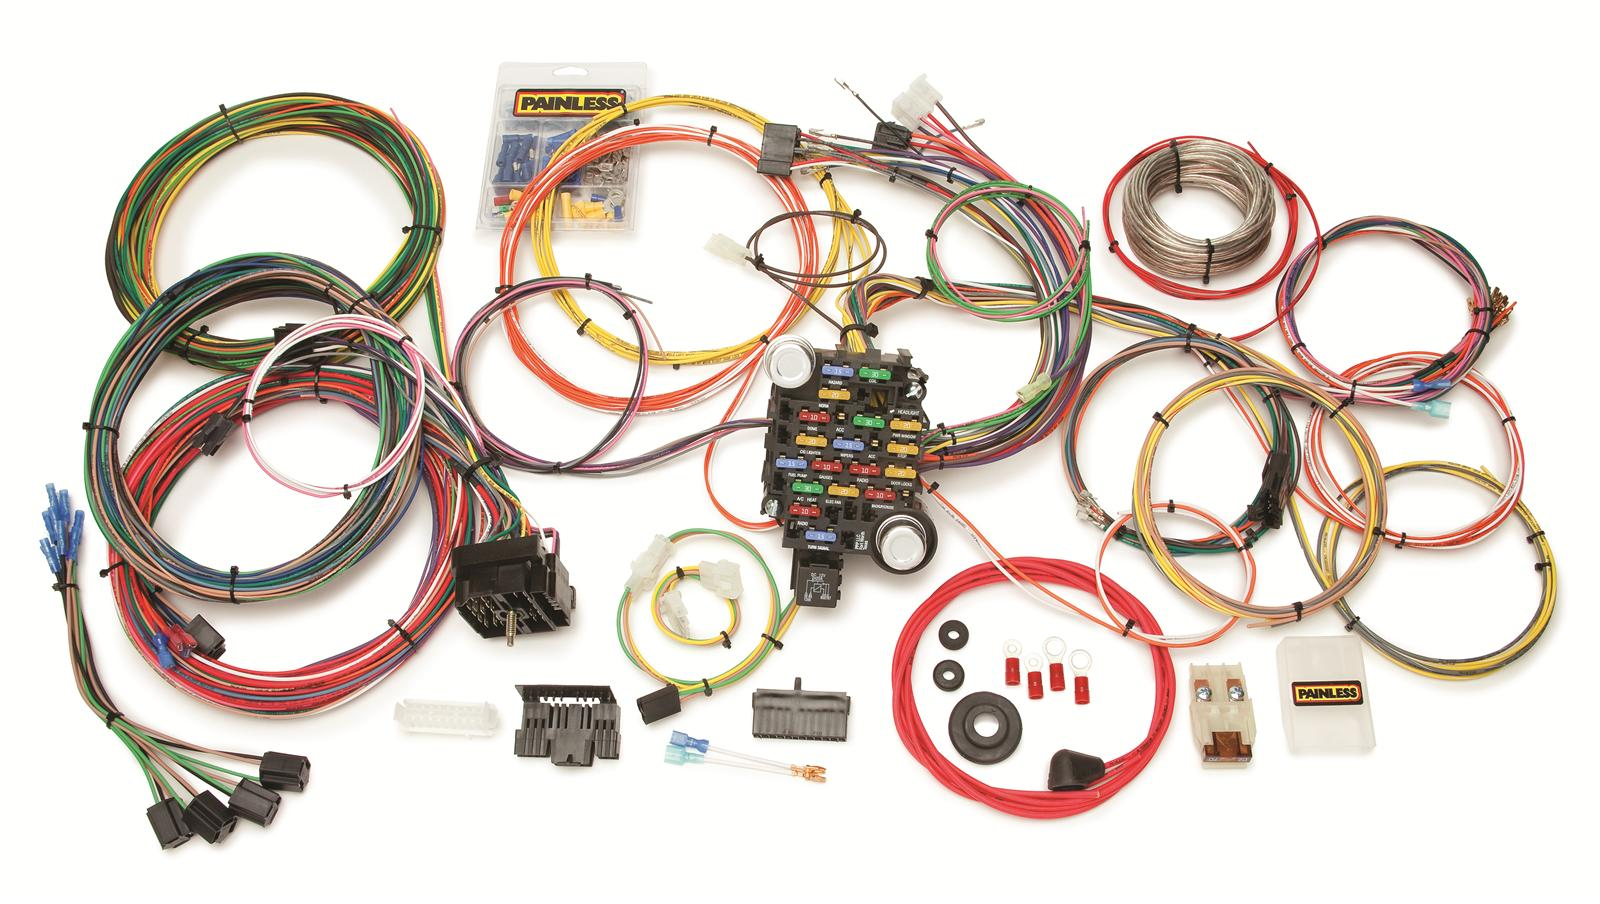 hight resolution of k5 blazer wiring harness wiring diagrams sapp 1985 chevy blazer wiring harness chevy blazer wiring harness